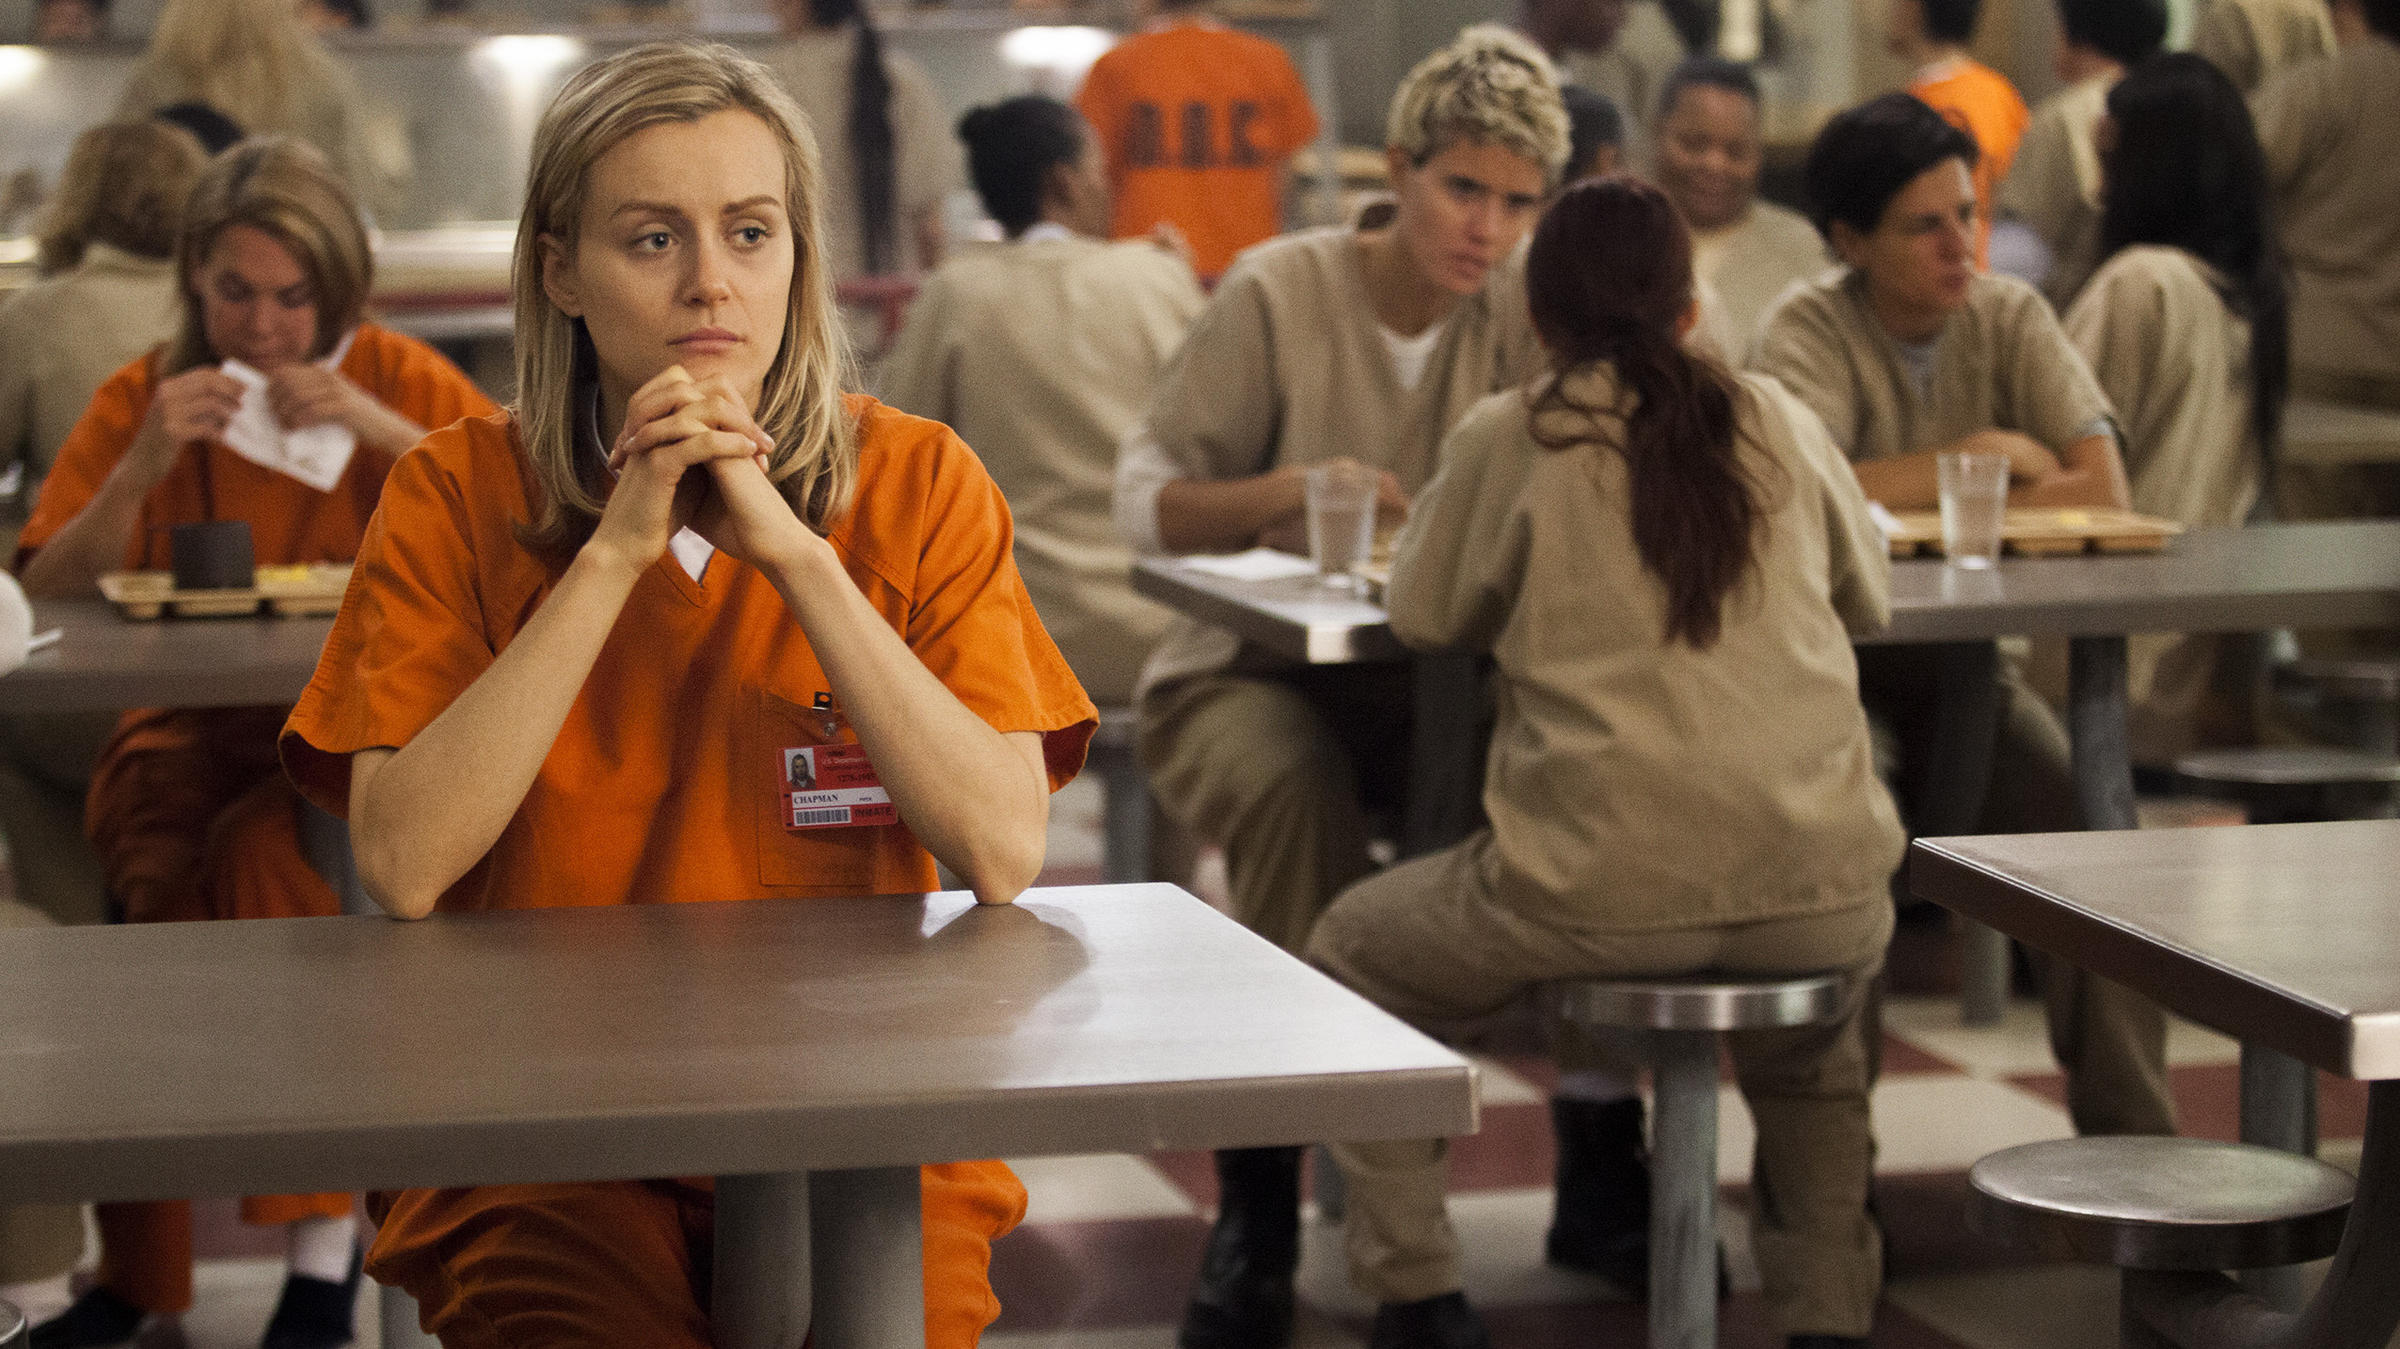 a white woman with shoulder-length blonde hair sits in an orange jumpsuit in a prison cafeteria on Orange is the New Black